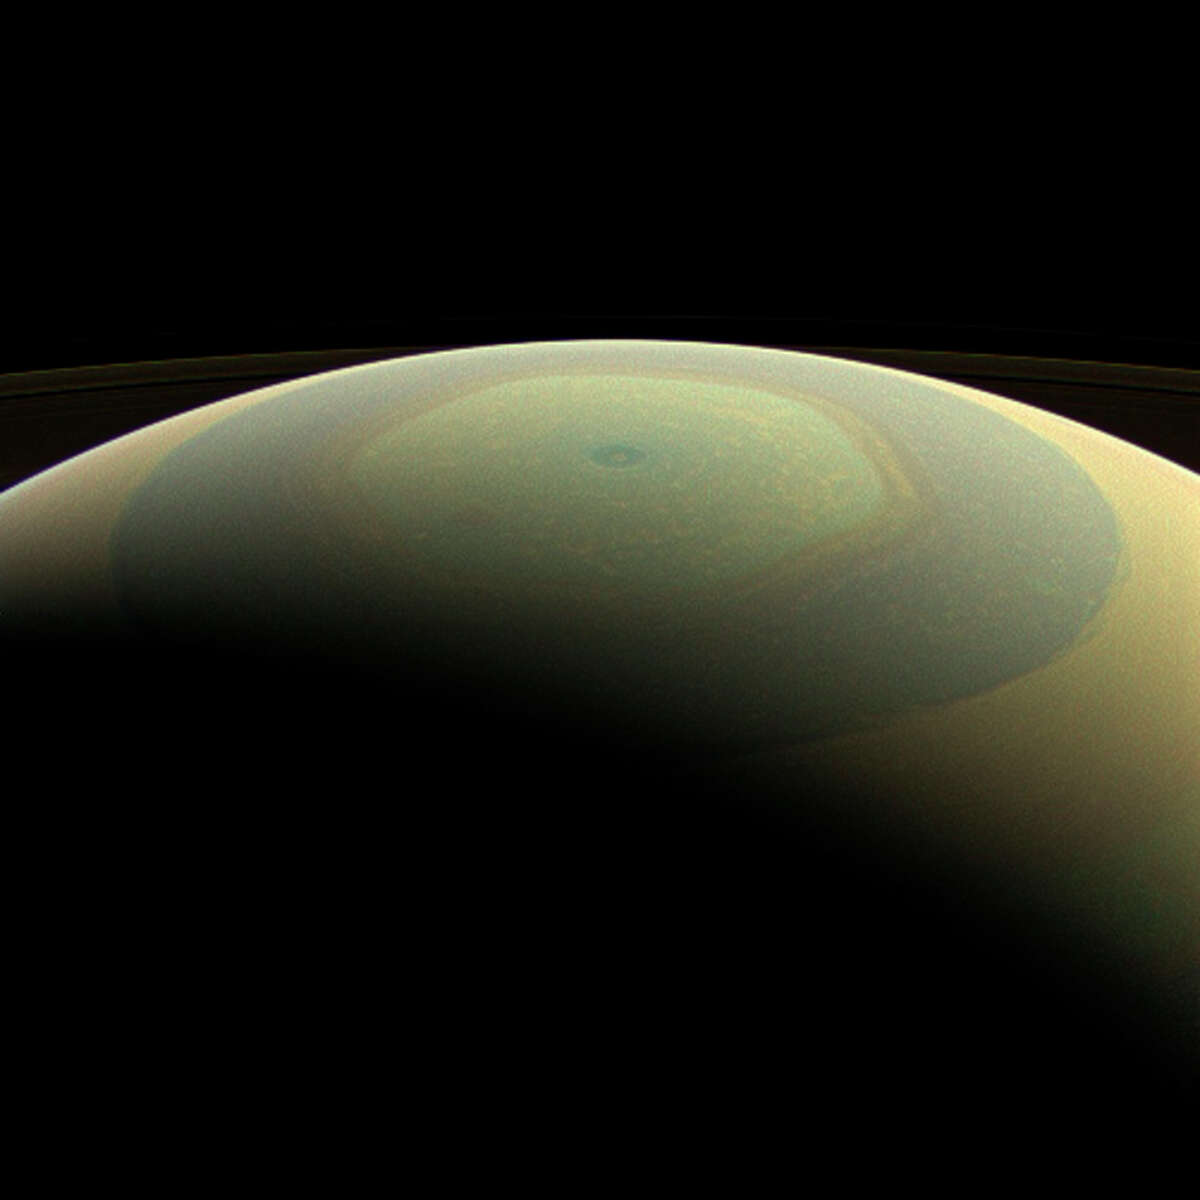 This July 22, 2013 image provided by NASA shows the globe of Saturn, seen here in natural color, in this wide-angle view from NASA's Cassini spacecraft. The characteristic hexagonal shape of Saturn's northern jet stream, somewhat yellow here, is visible. At the pole lies a Saturnian version of a high-speed hurricane, eye and all. This view is centered on terrain at 75 degrees north latitude, 120 degrees west longitude. Images taken using red, green and blue spectral filters were combined to create this natural-color view. The images were taken with the Cassini spacecraft wide-angle camera. (AP Photo/NASA/JPL-Caltech/Space Science Institute) ORG XMIT: LA112